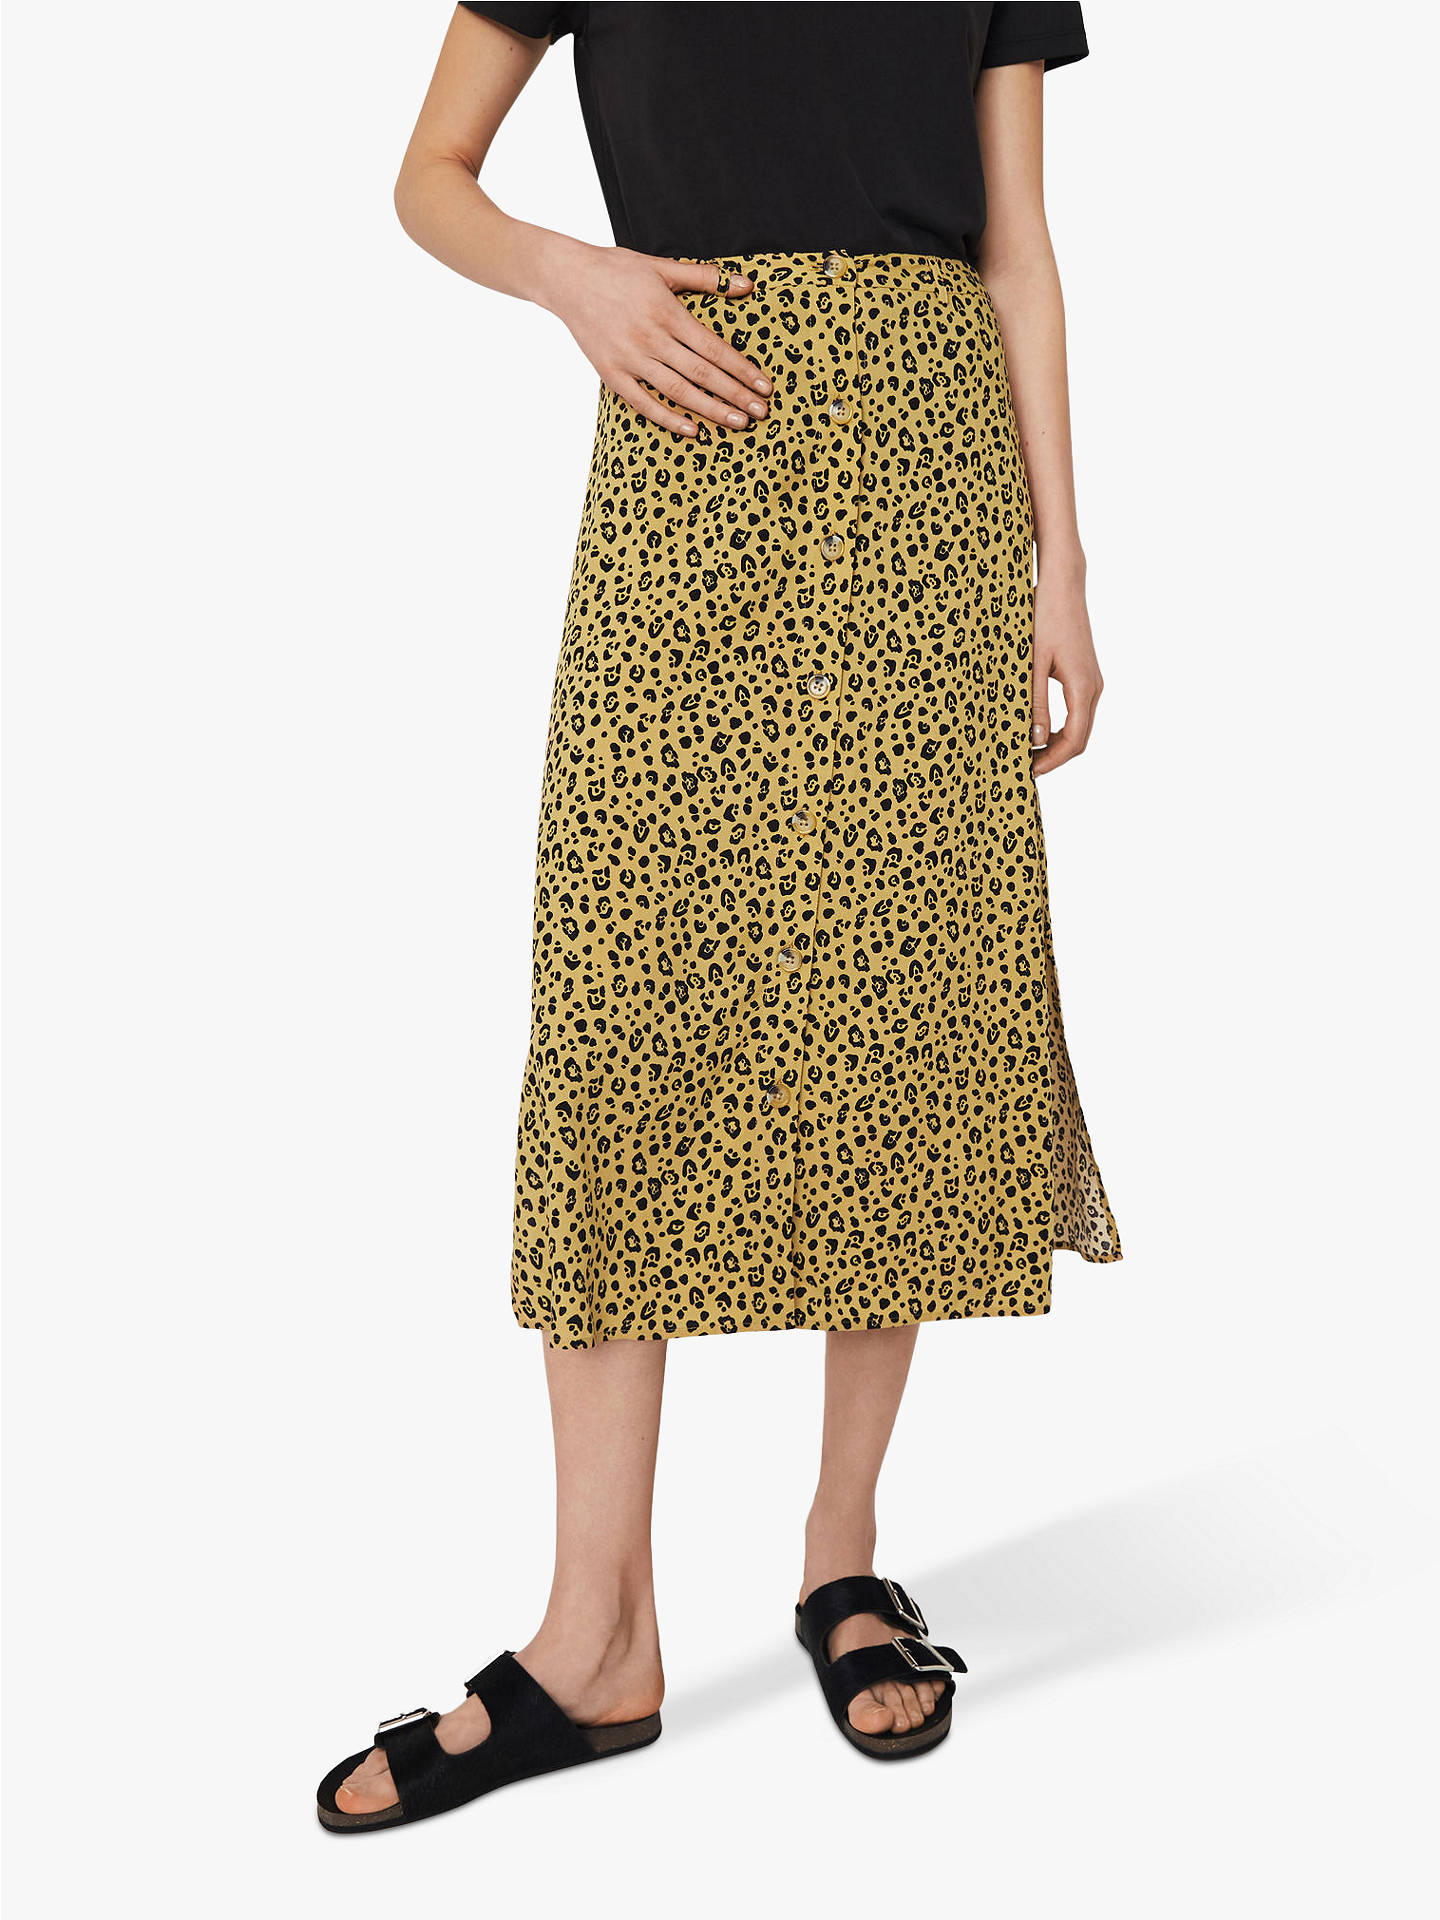 c66d5782cfd4 Buy Warehouse Leopard Print Skirt, Neutral, 12 Online at johnlewis.com ...